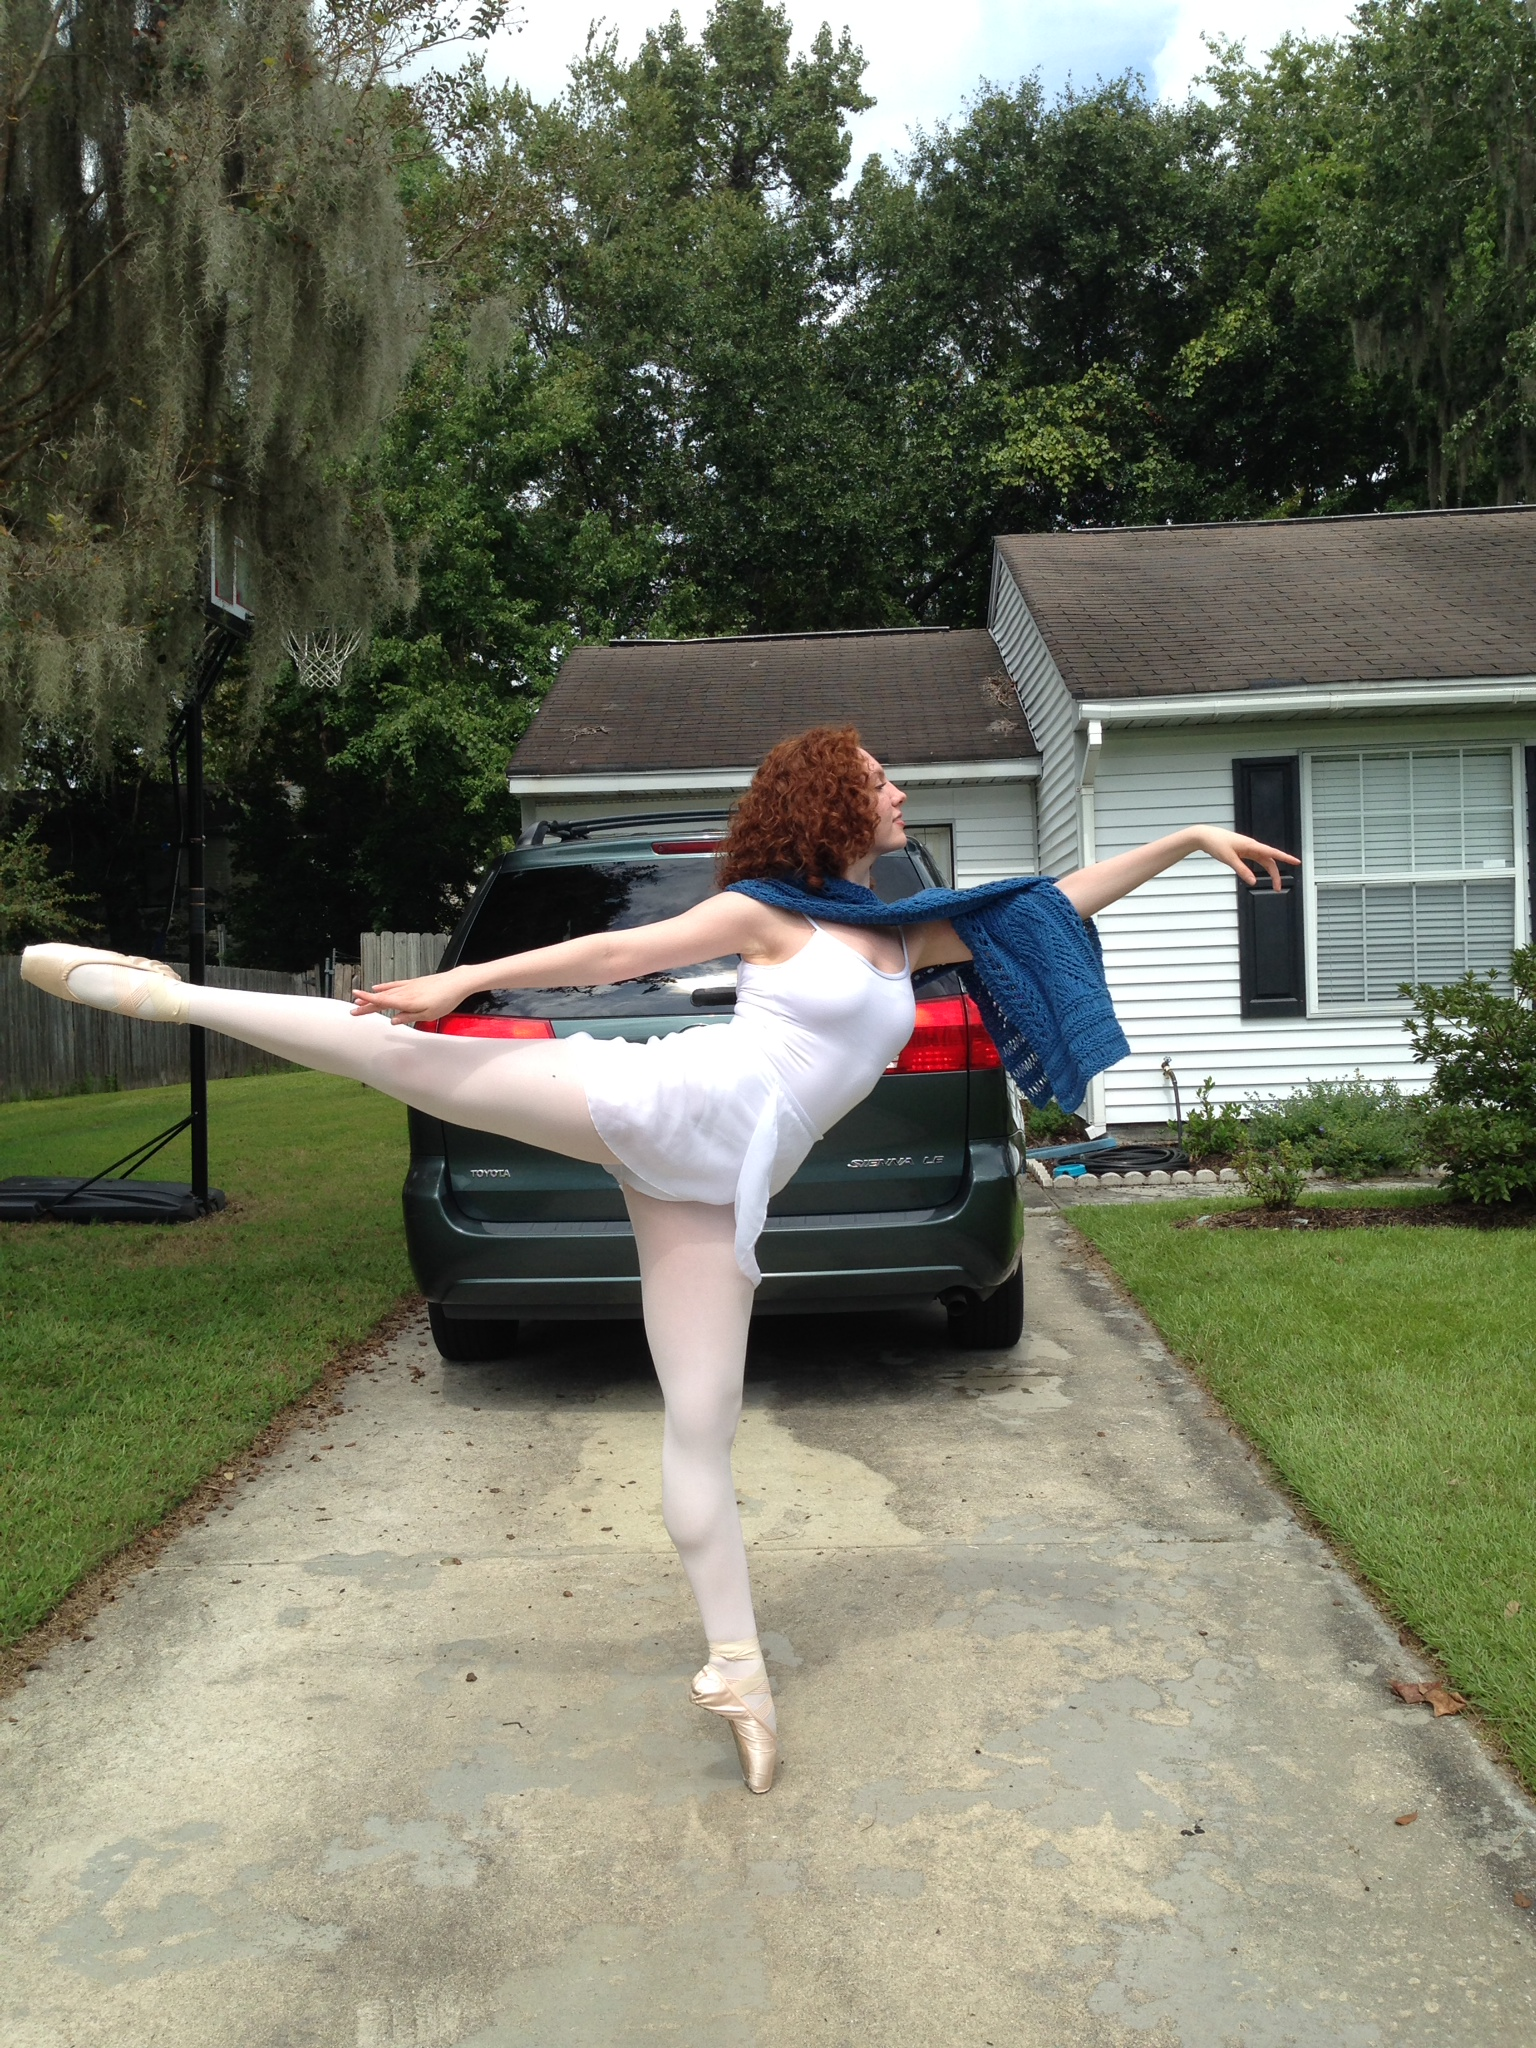 It helps to have a model who is studying to be a professional dancer...